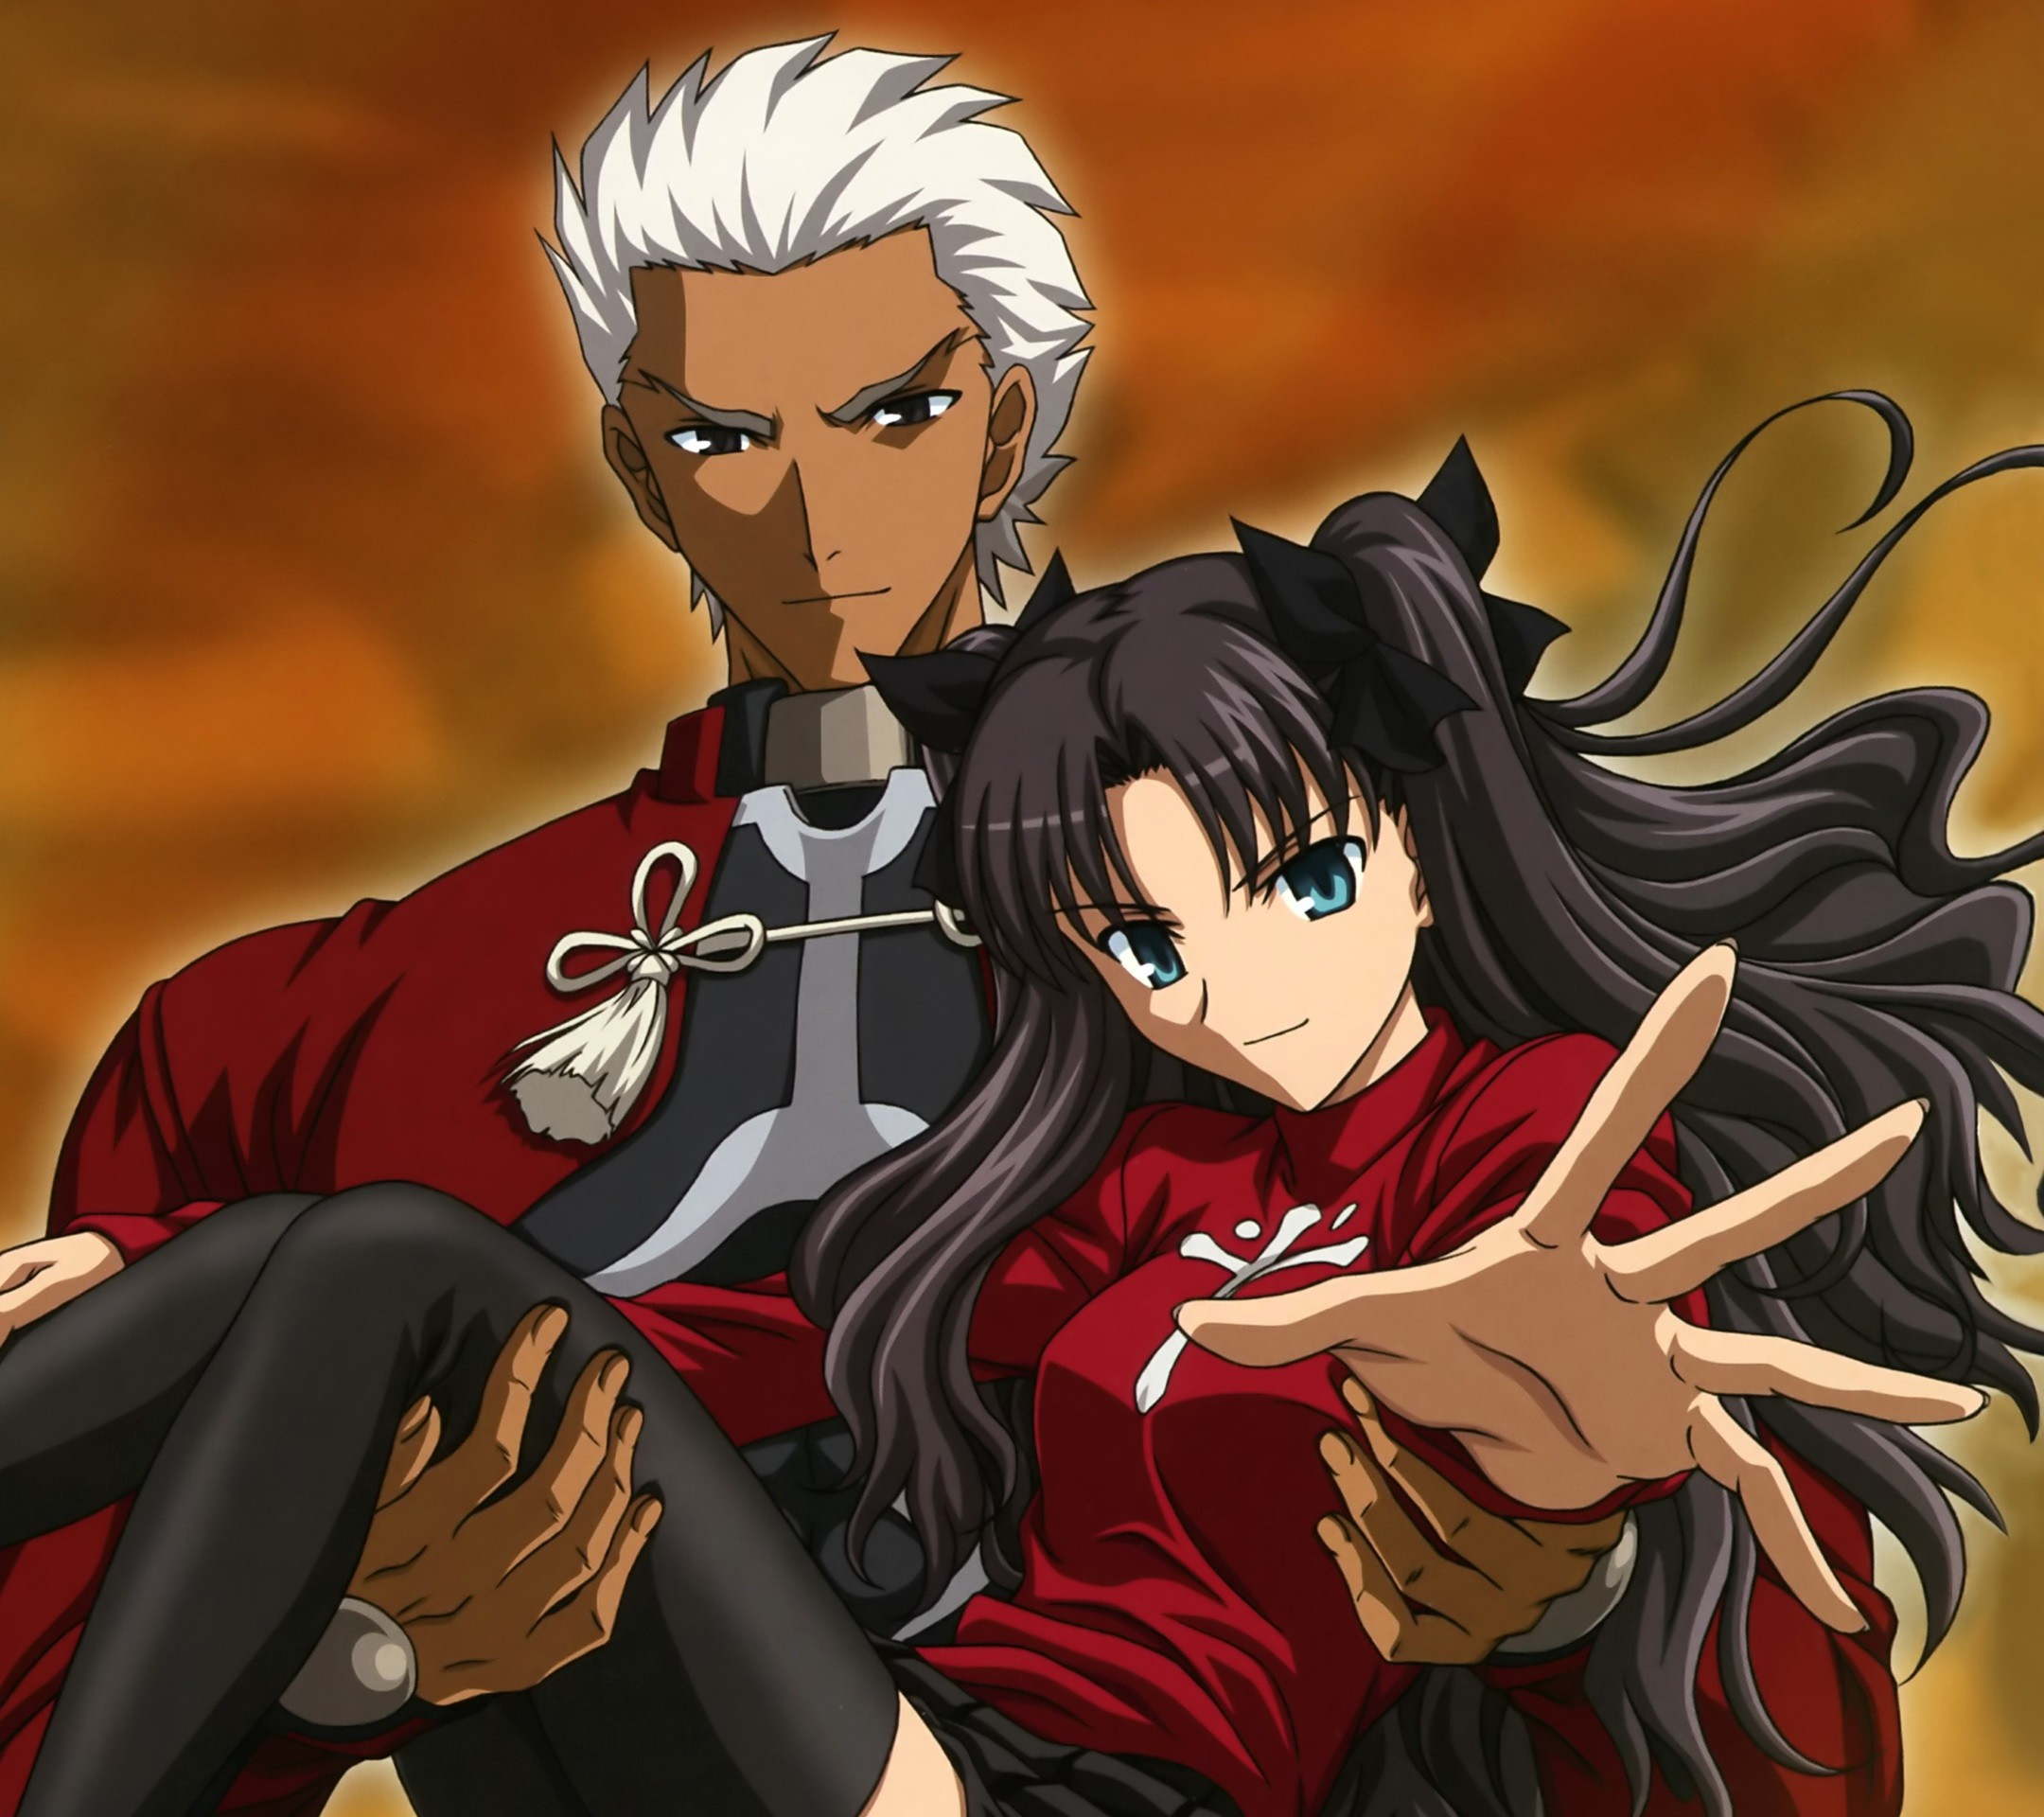 2160x1920 Fate Stay Night Unlimited Blade Works Rin Tohsaka Archer.Android wallpaper